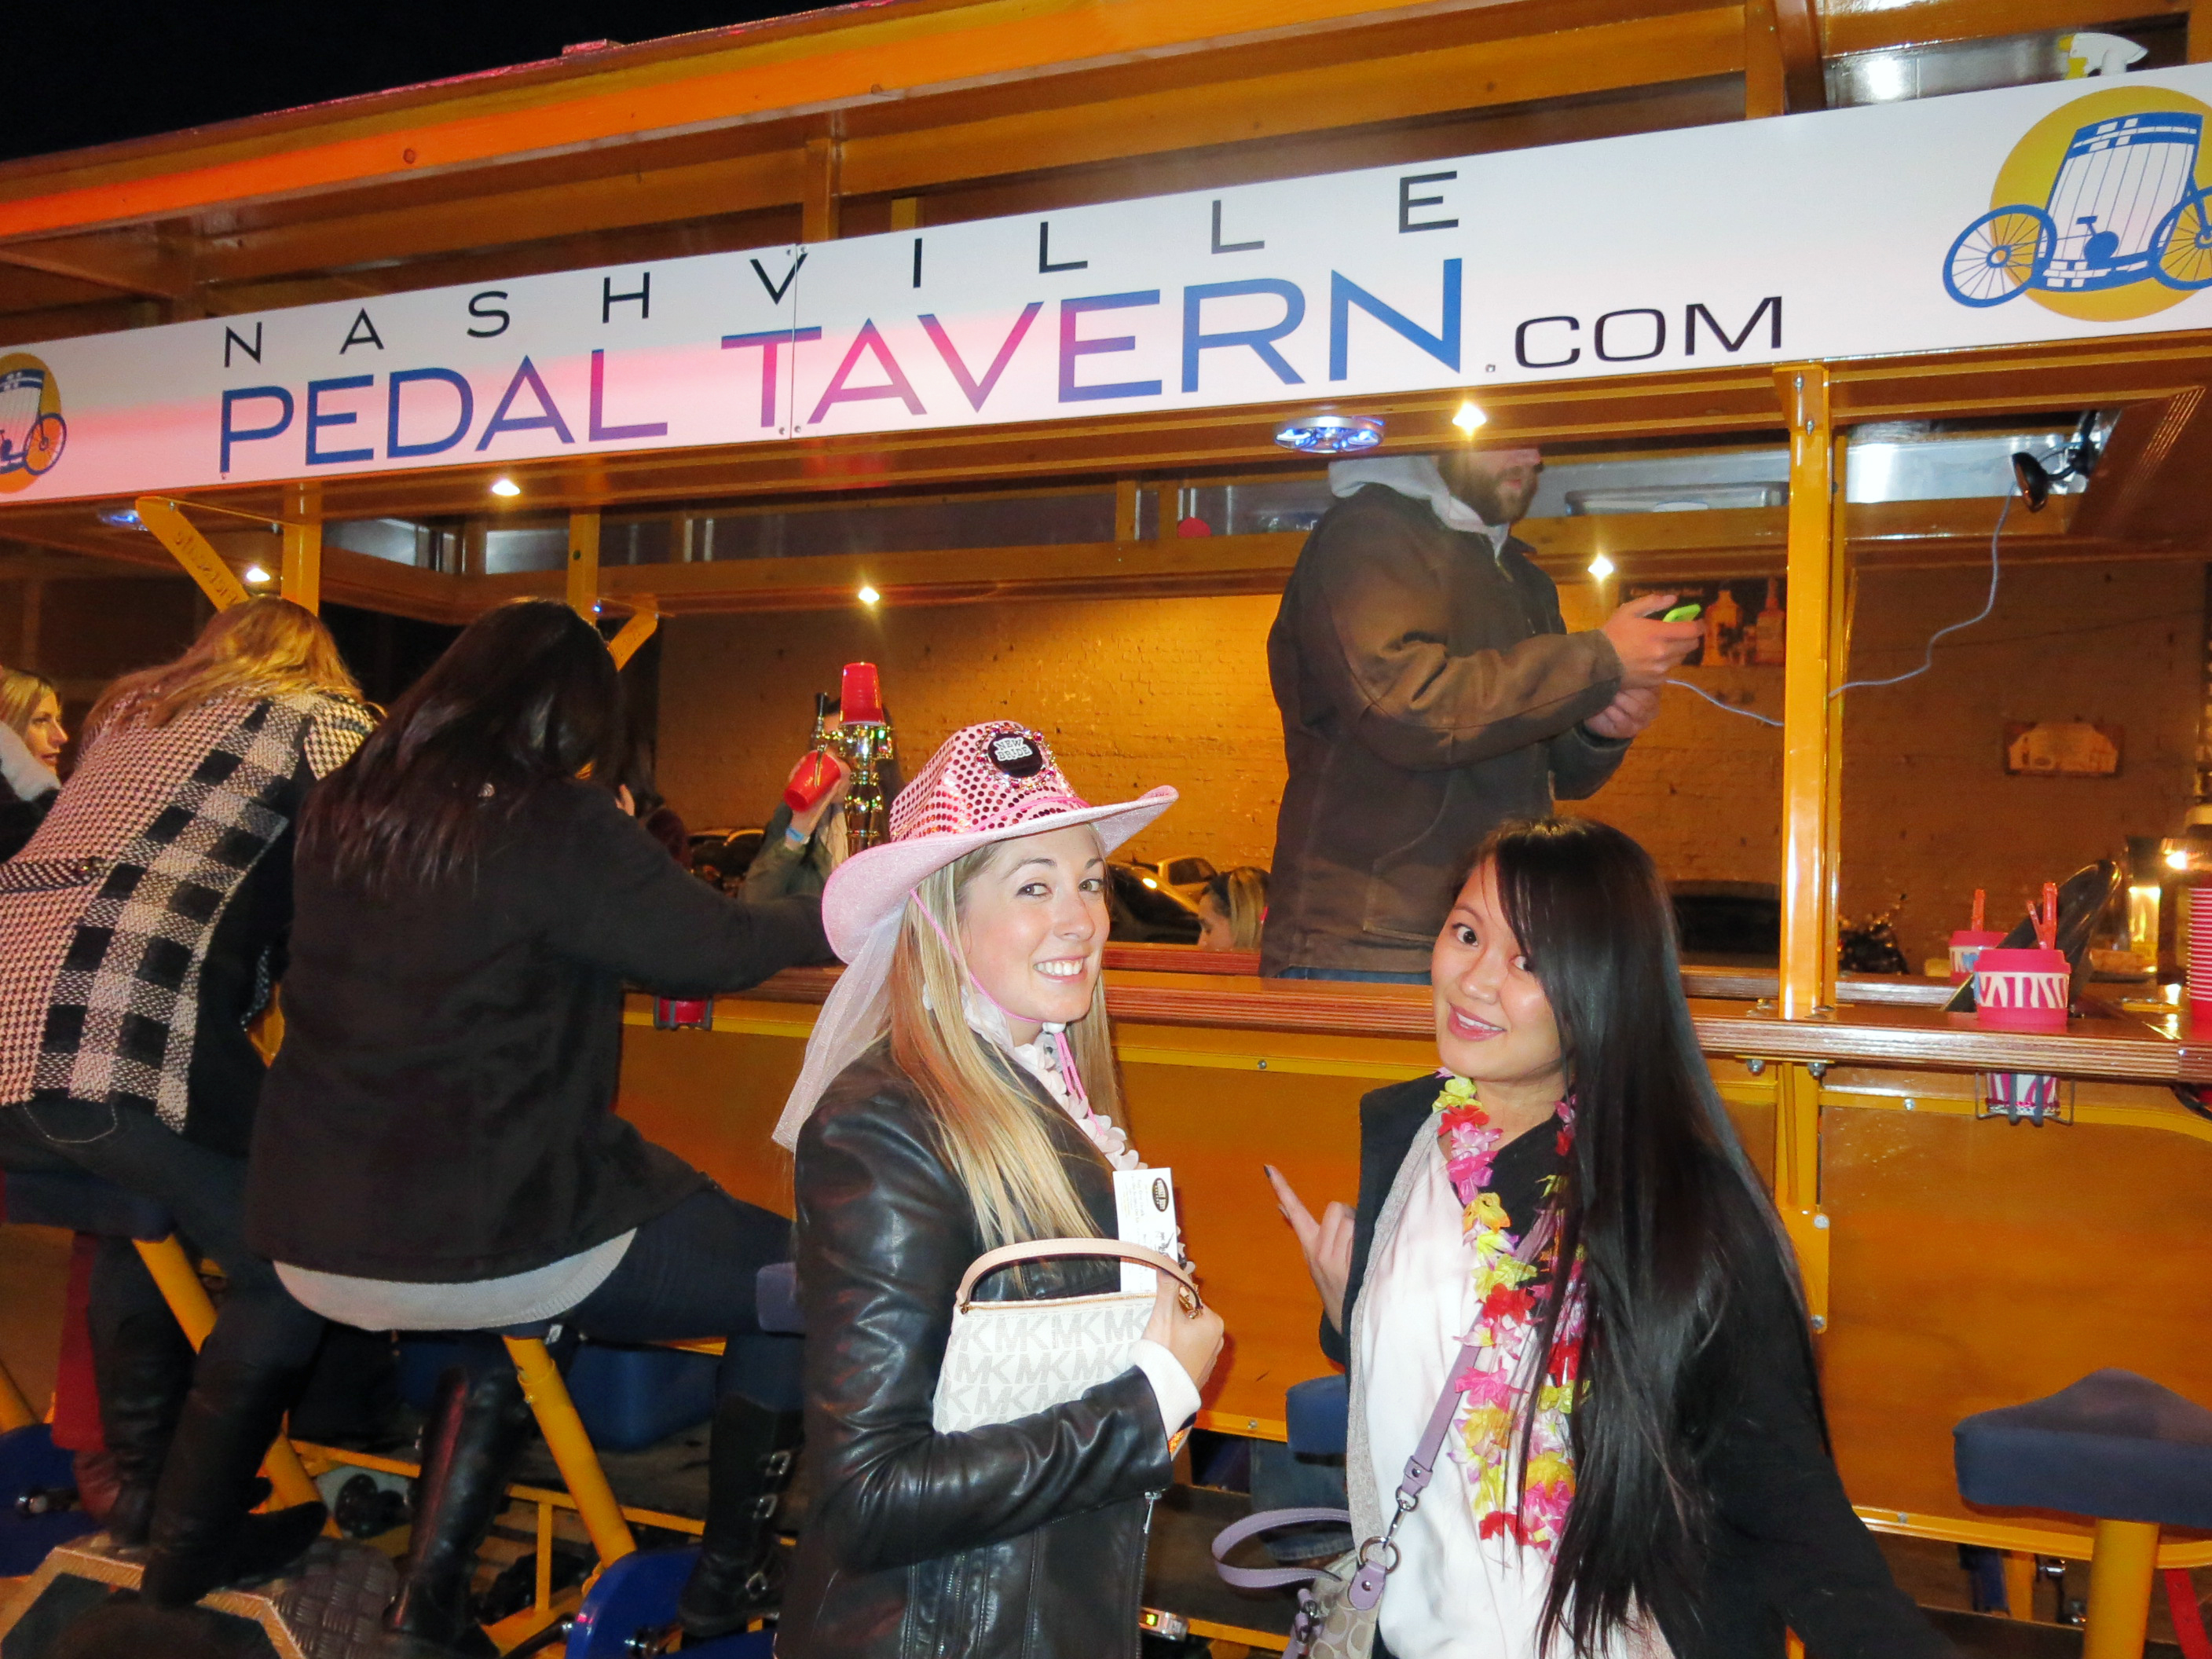 Bachelorette party on the pedal tavern